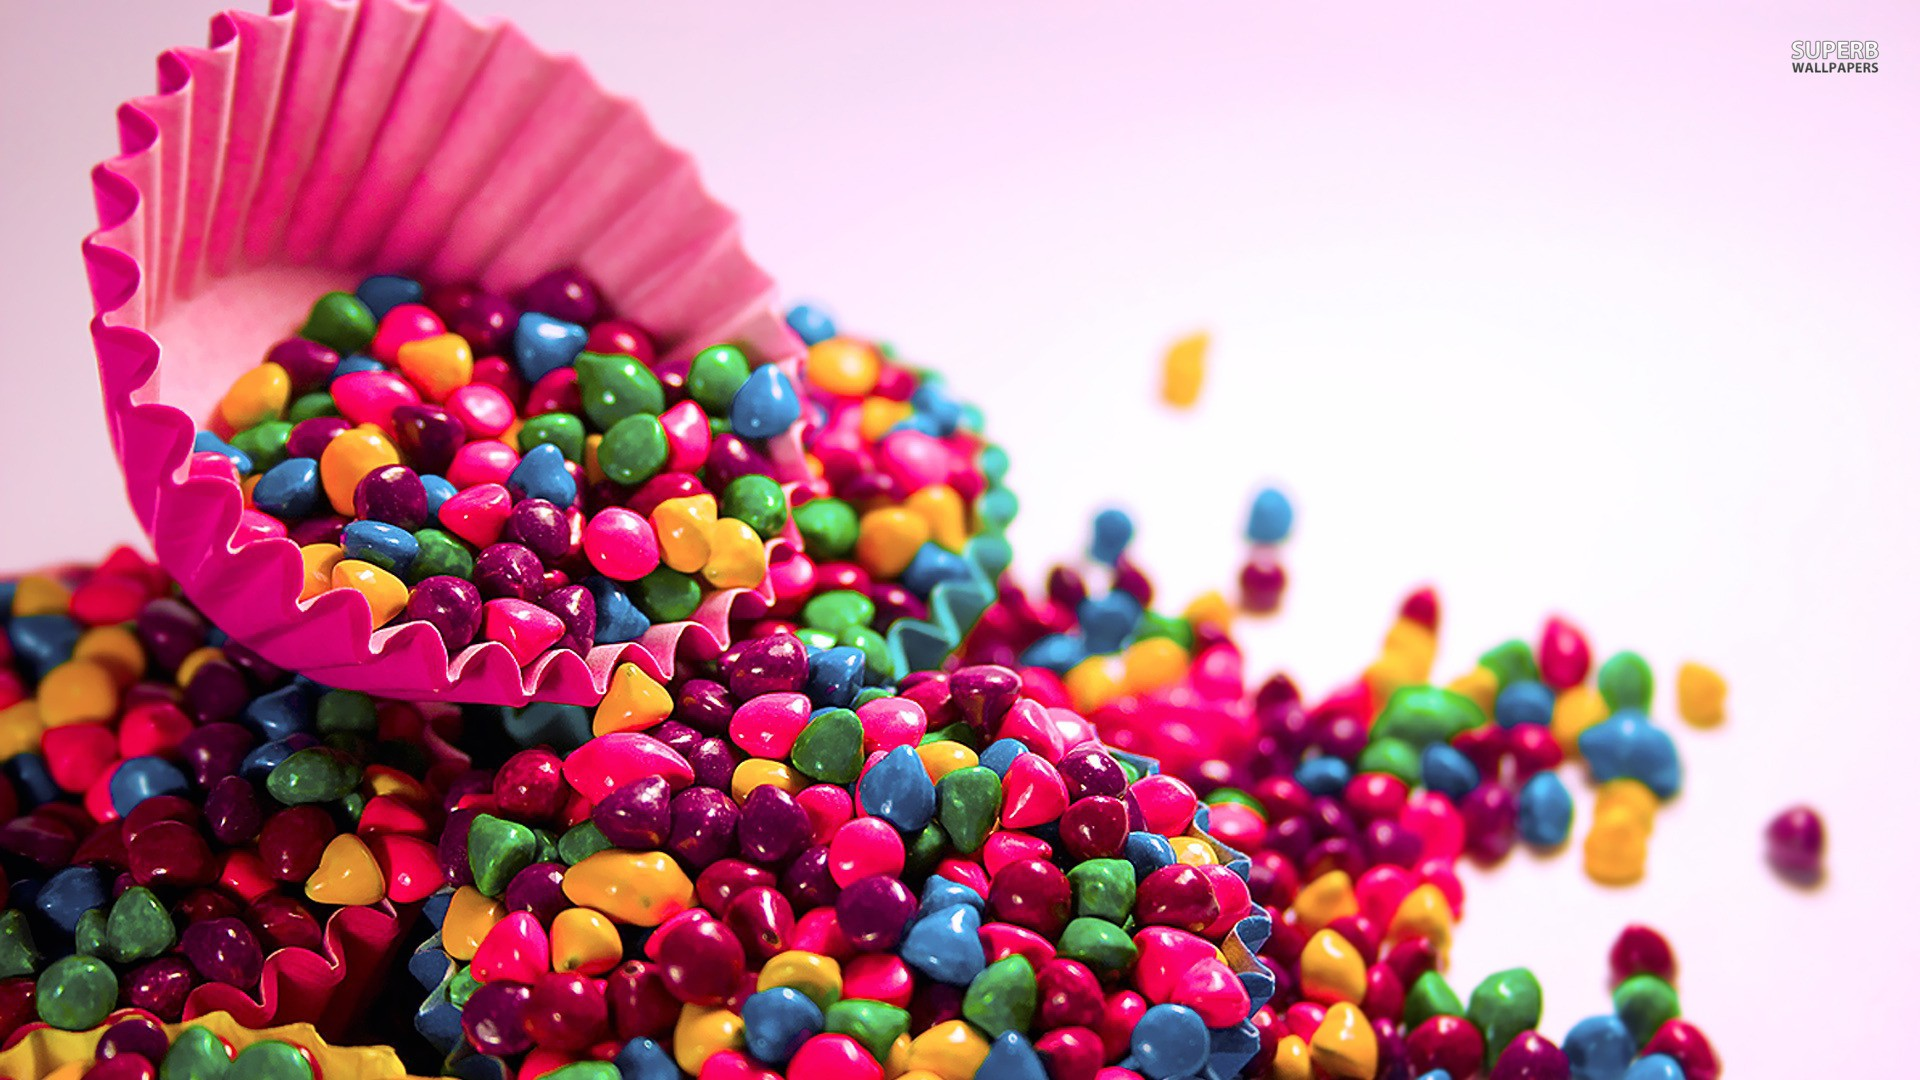 Colorful Food Wallpaper Free Download: Candy Background ·① Download Free Amazing Full HD